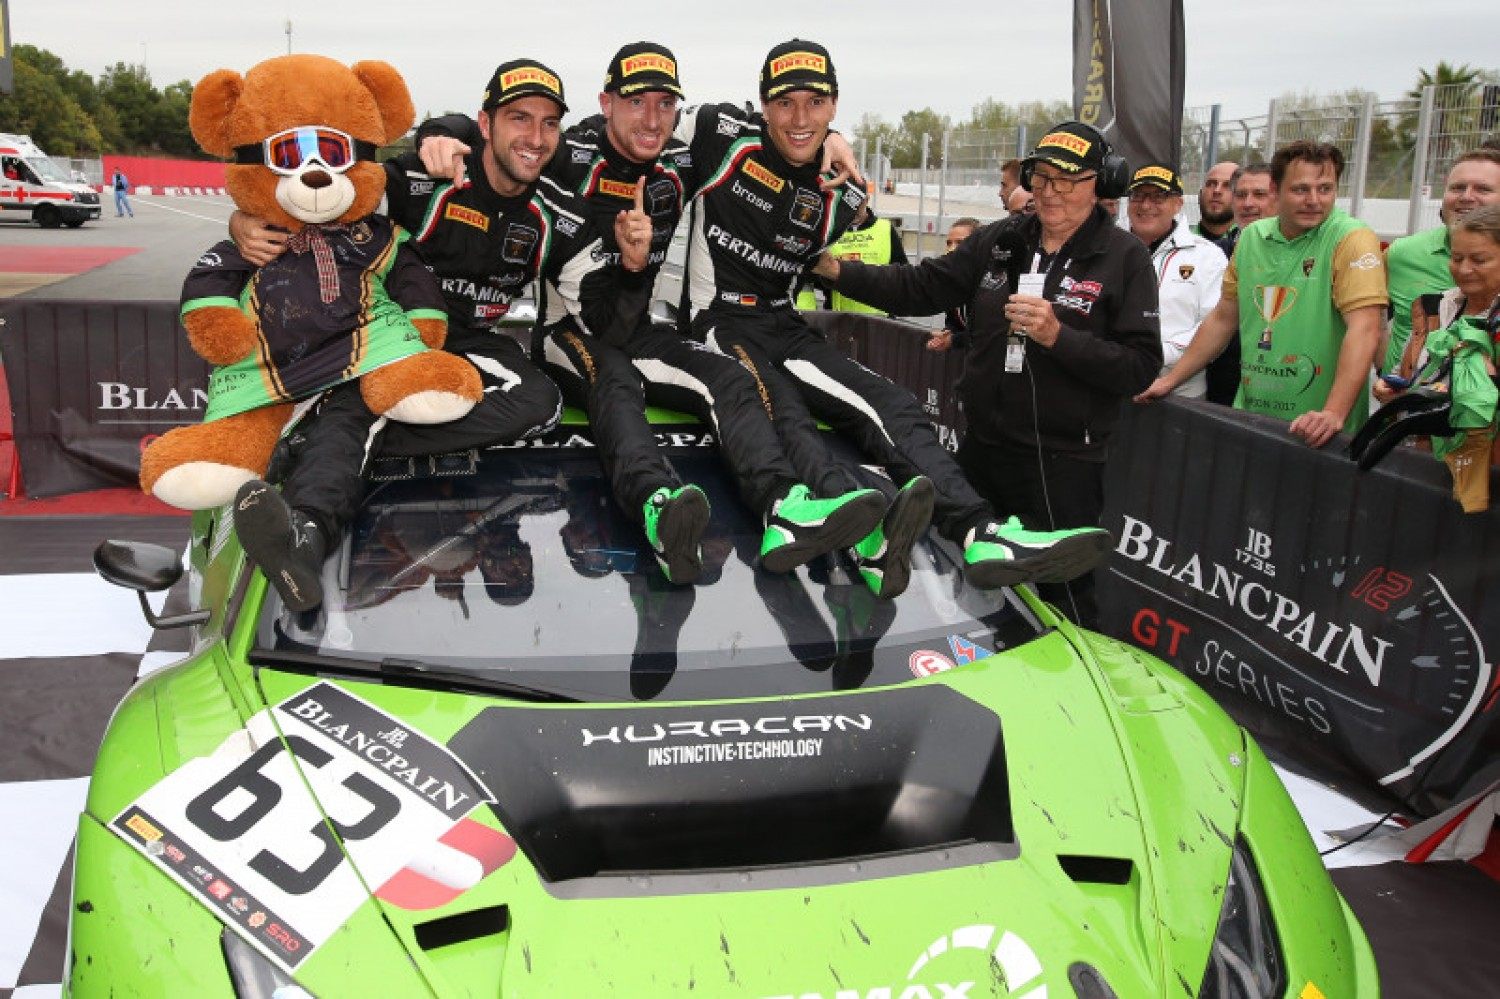 Lamborghini gunning for home-race glory at Misano